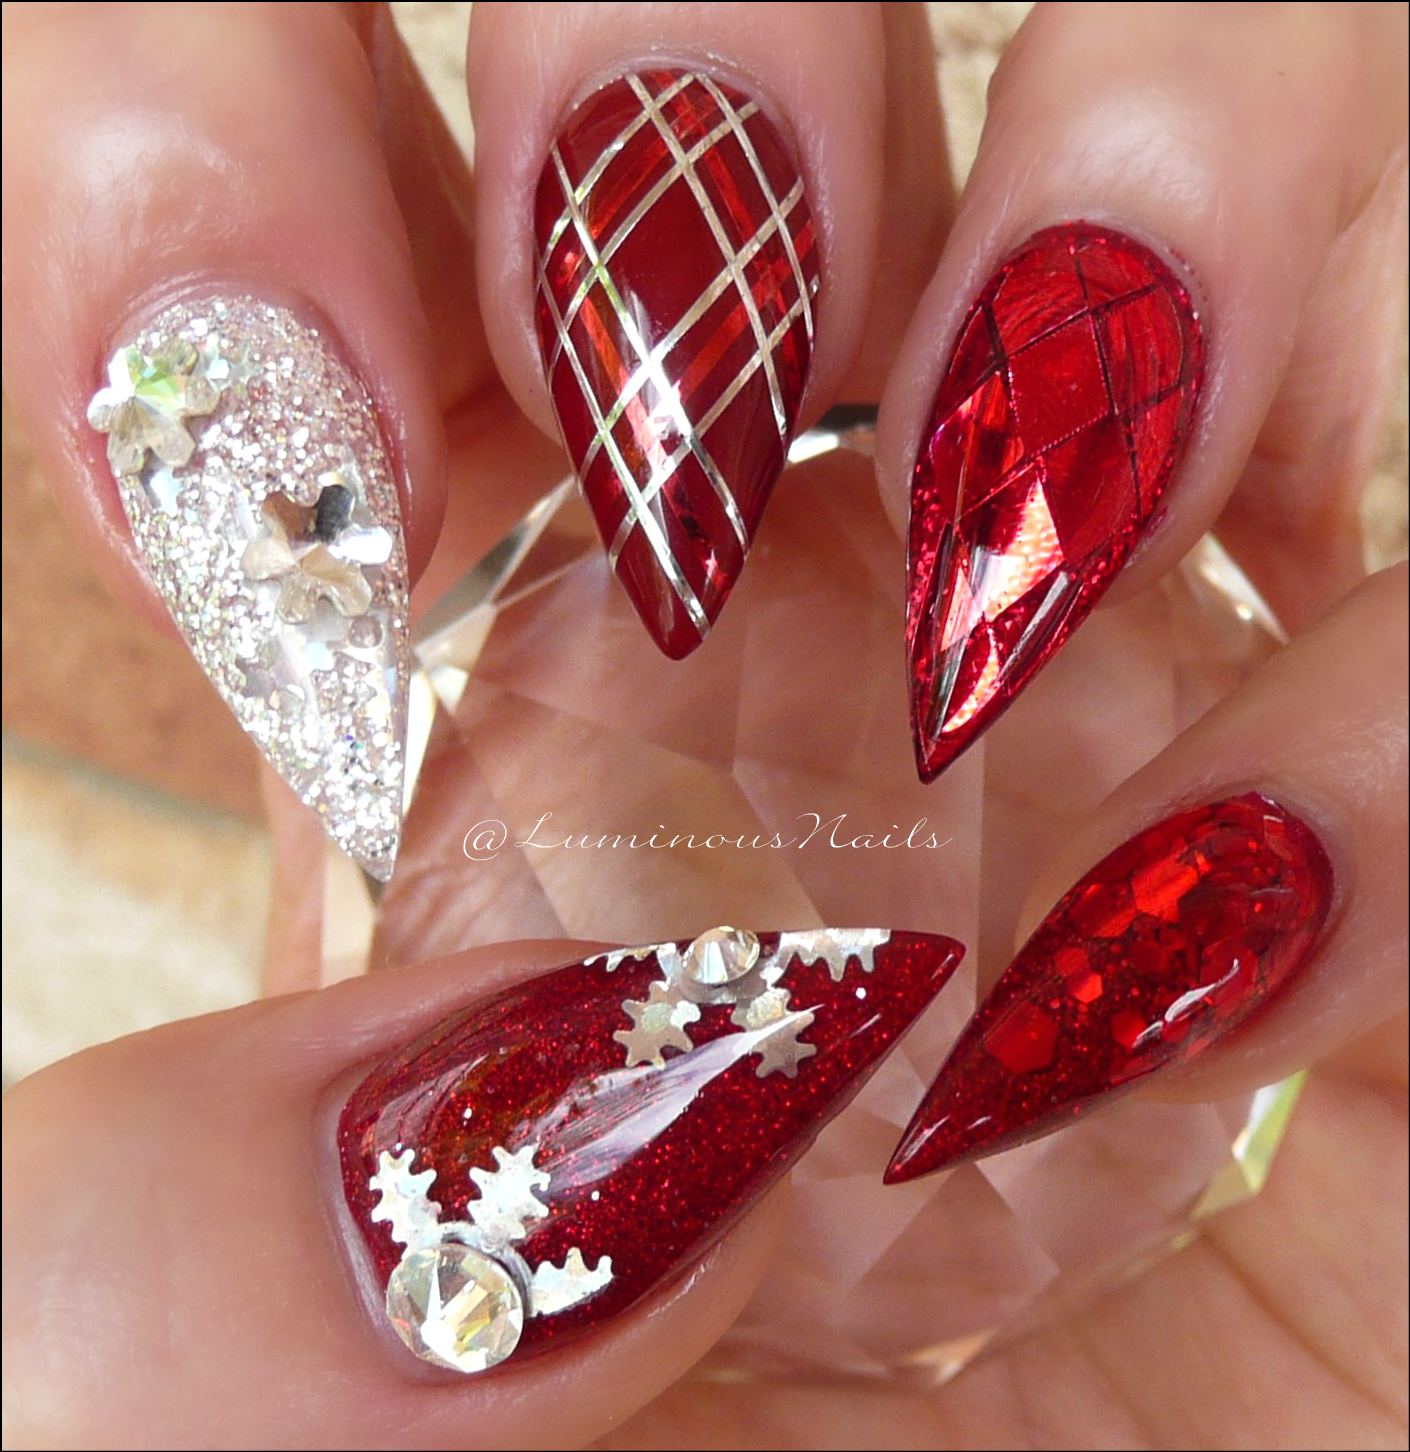 Naildesignusingnailfoil foil nail art craft how tos foil easy and silver nail designs rhinestones glitter nail designs pinterest silver nail art designs prinsesfo Choice Image